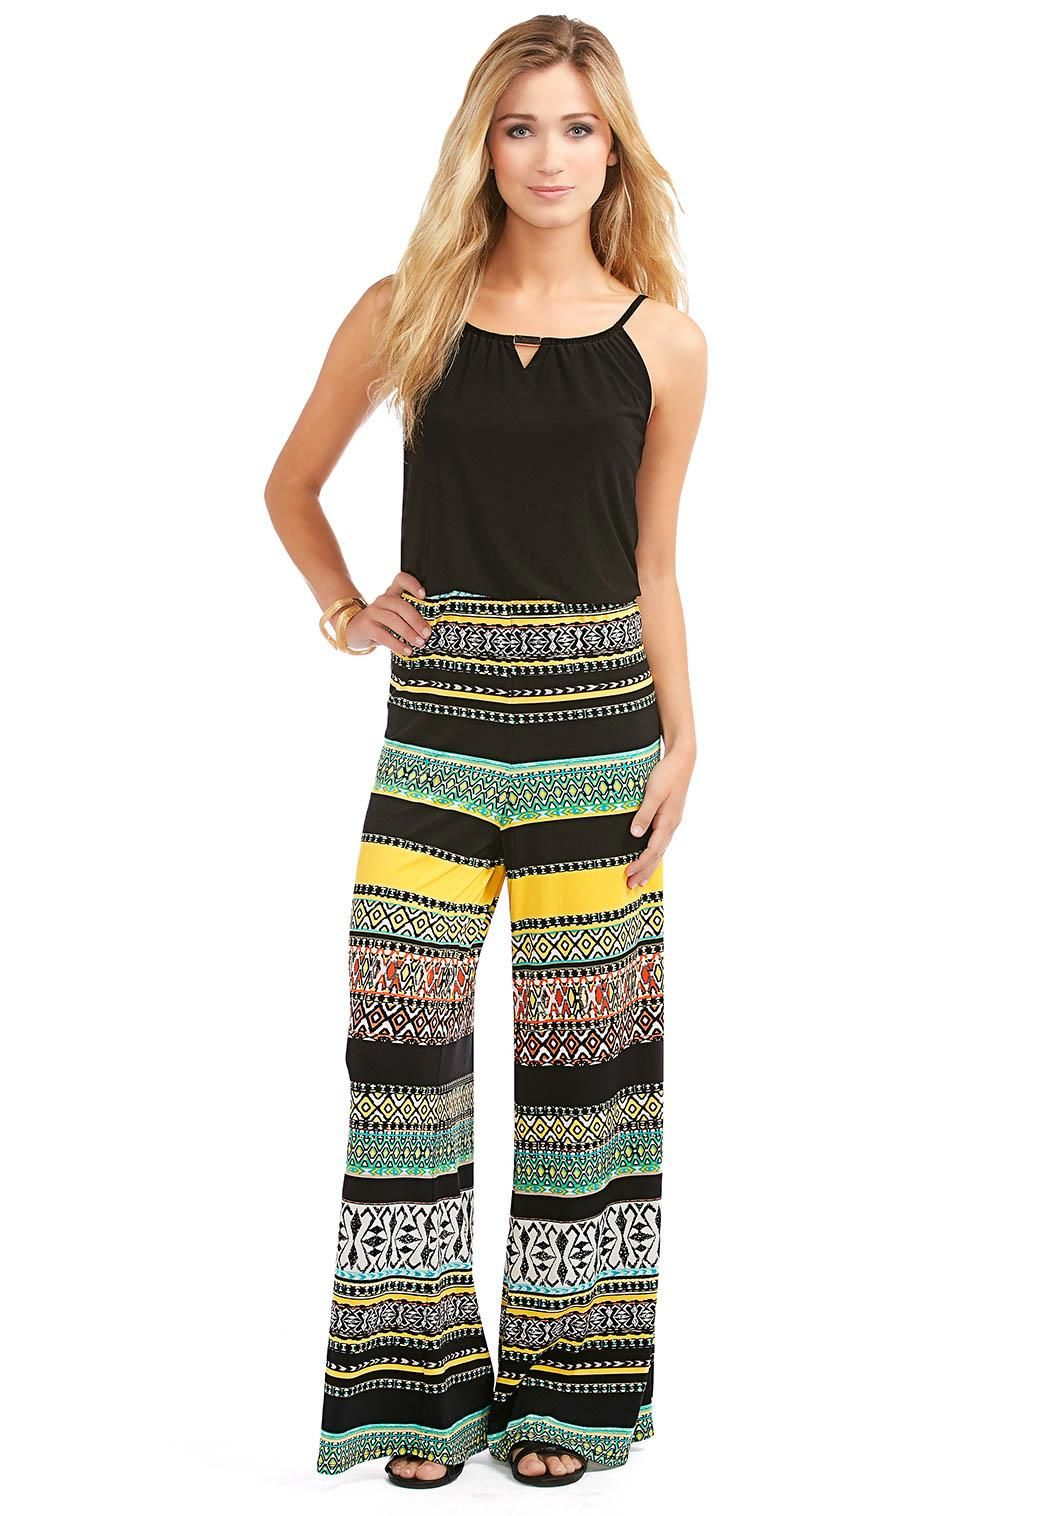 Aztec Print Jumpsuit Casual Cato Fashions CatoSummerStyle